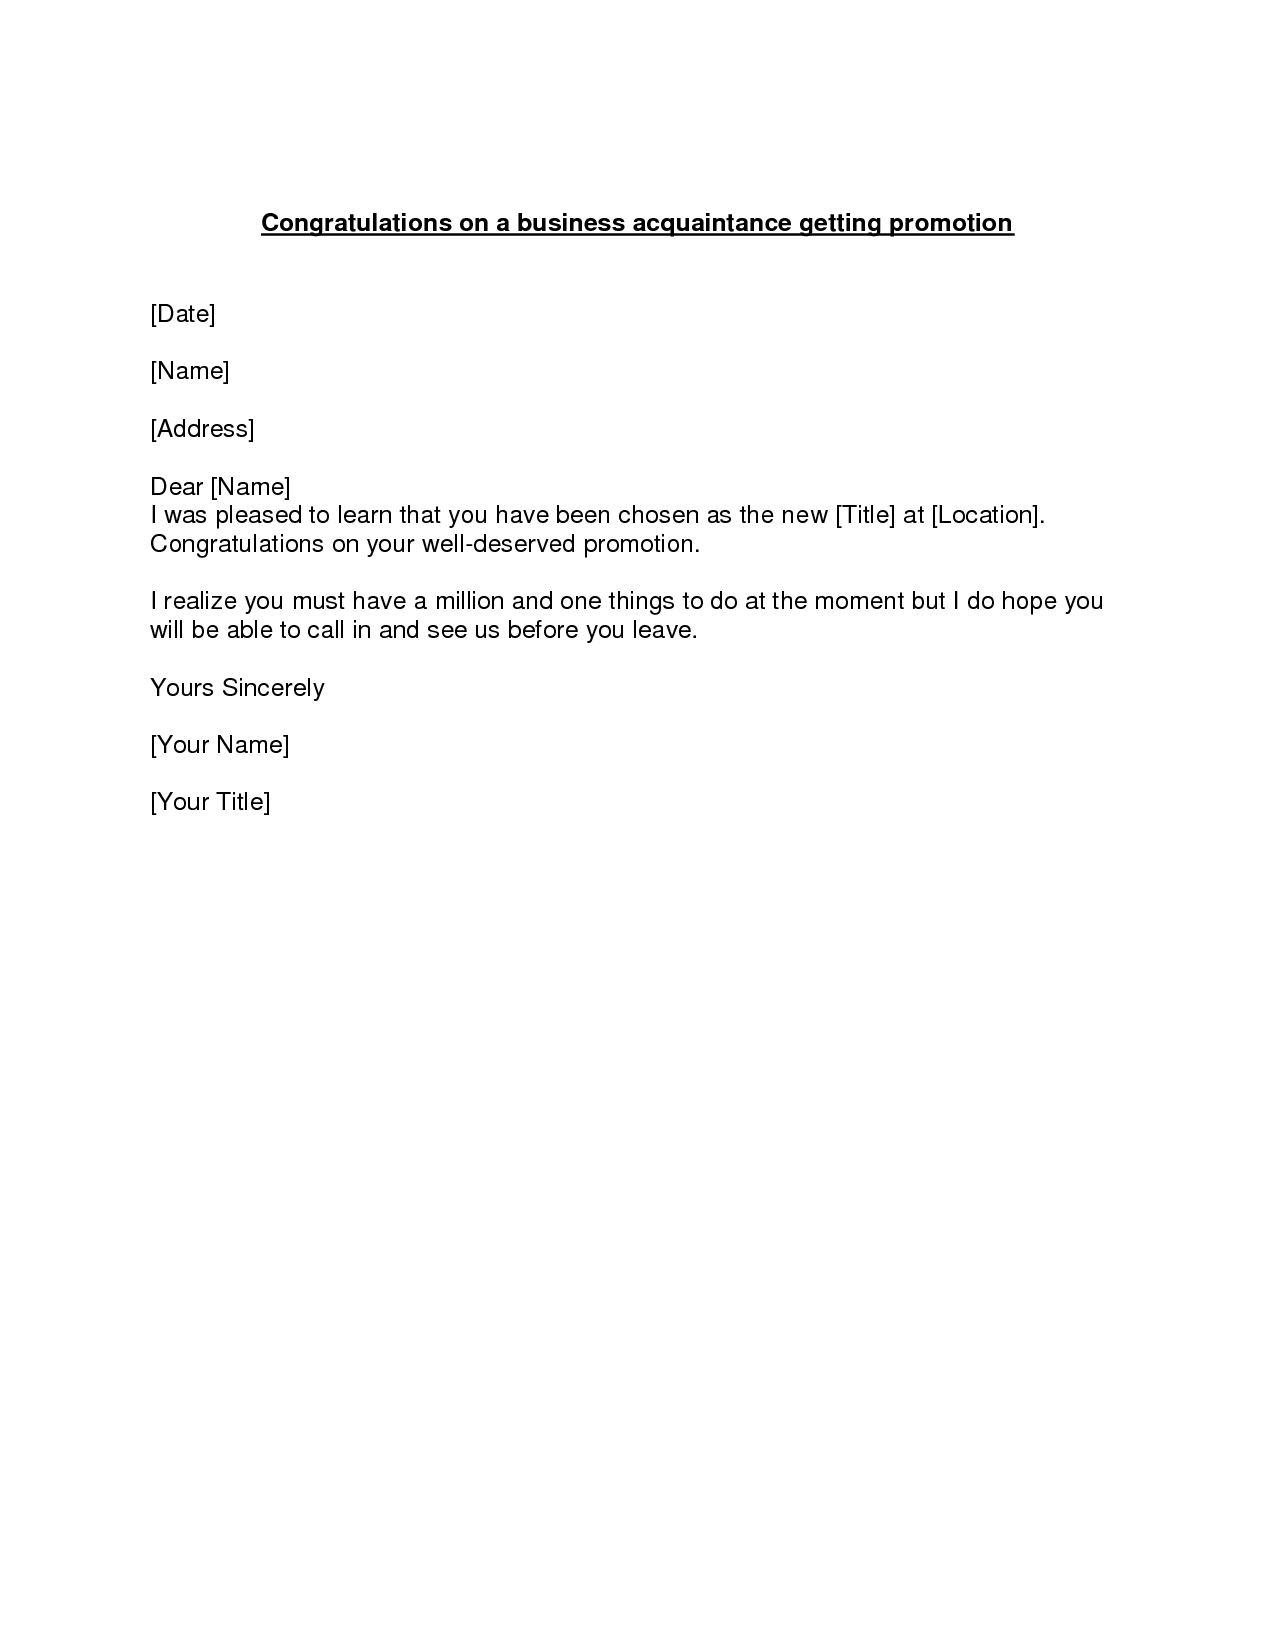 recognition congratulations letter sample retirement recognition promotion congratulations letter example of a congratulations letter to send to a business associate who